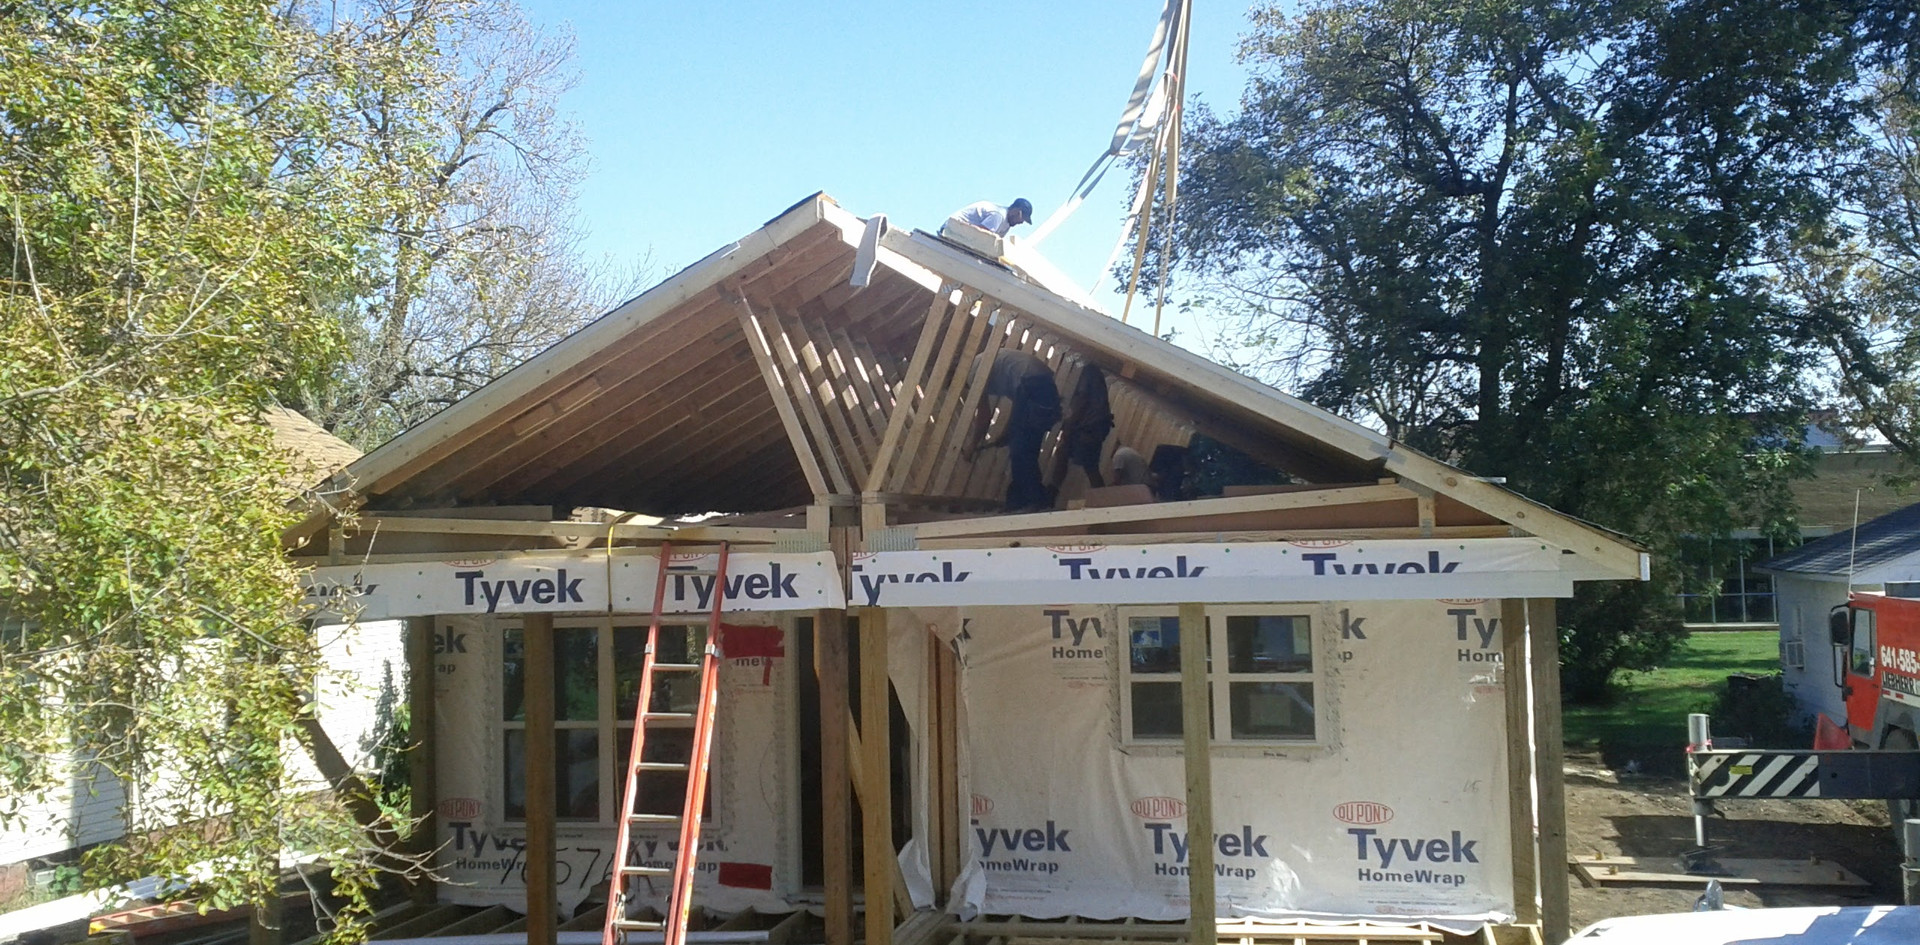 Lifting the second half of the roof